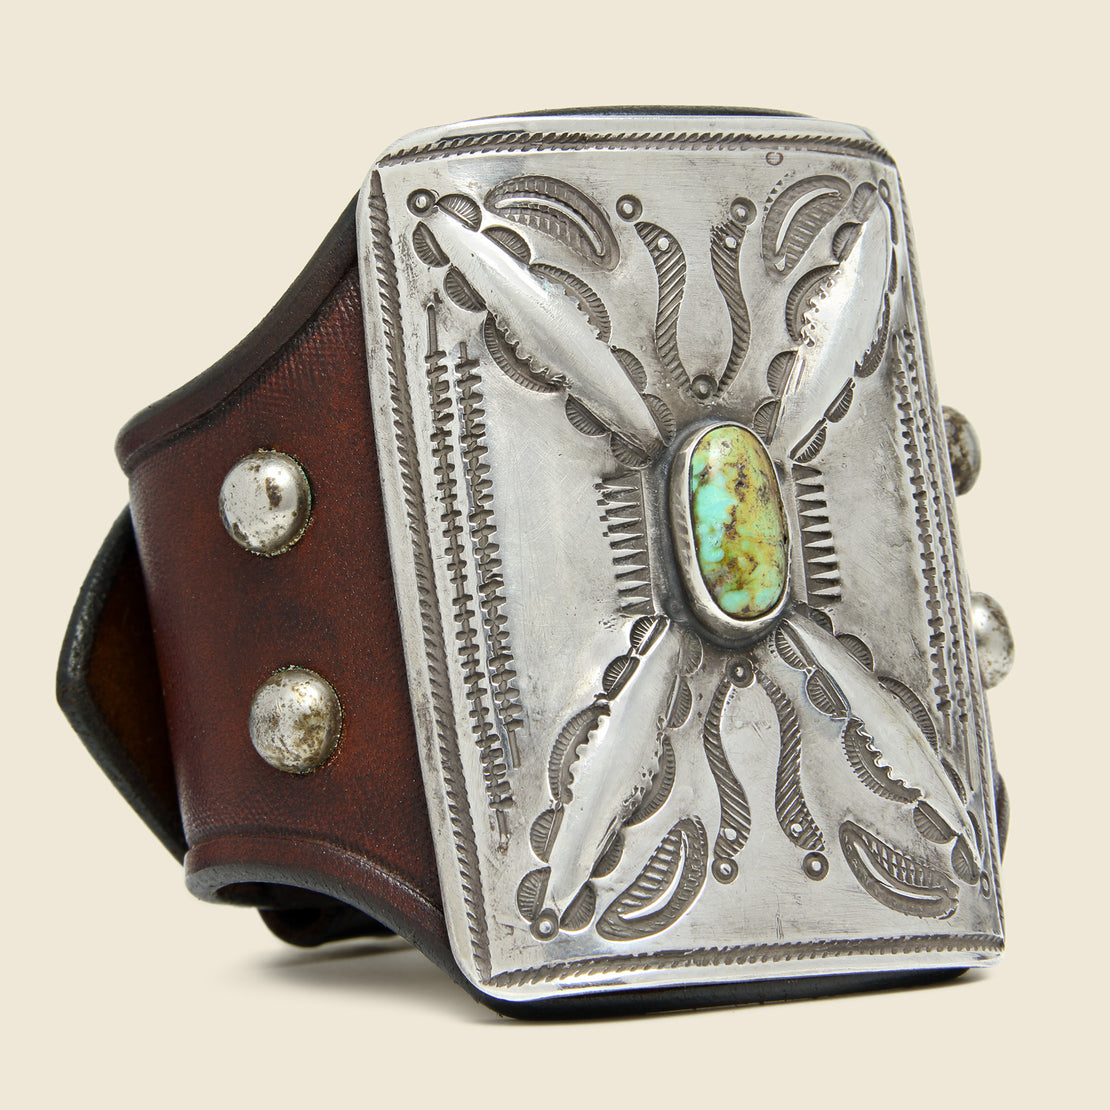 Smith Bros. Trading Co. Cresent & Dash Stamped Ketoh - Leather/Sterling/Turquoise